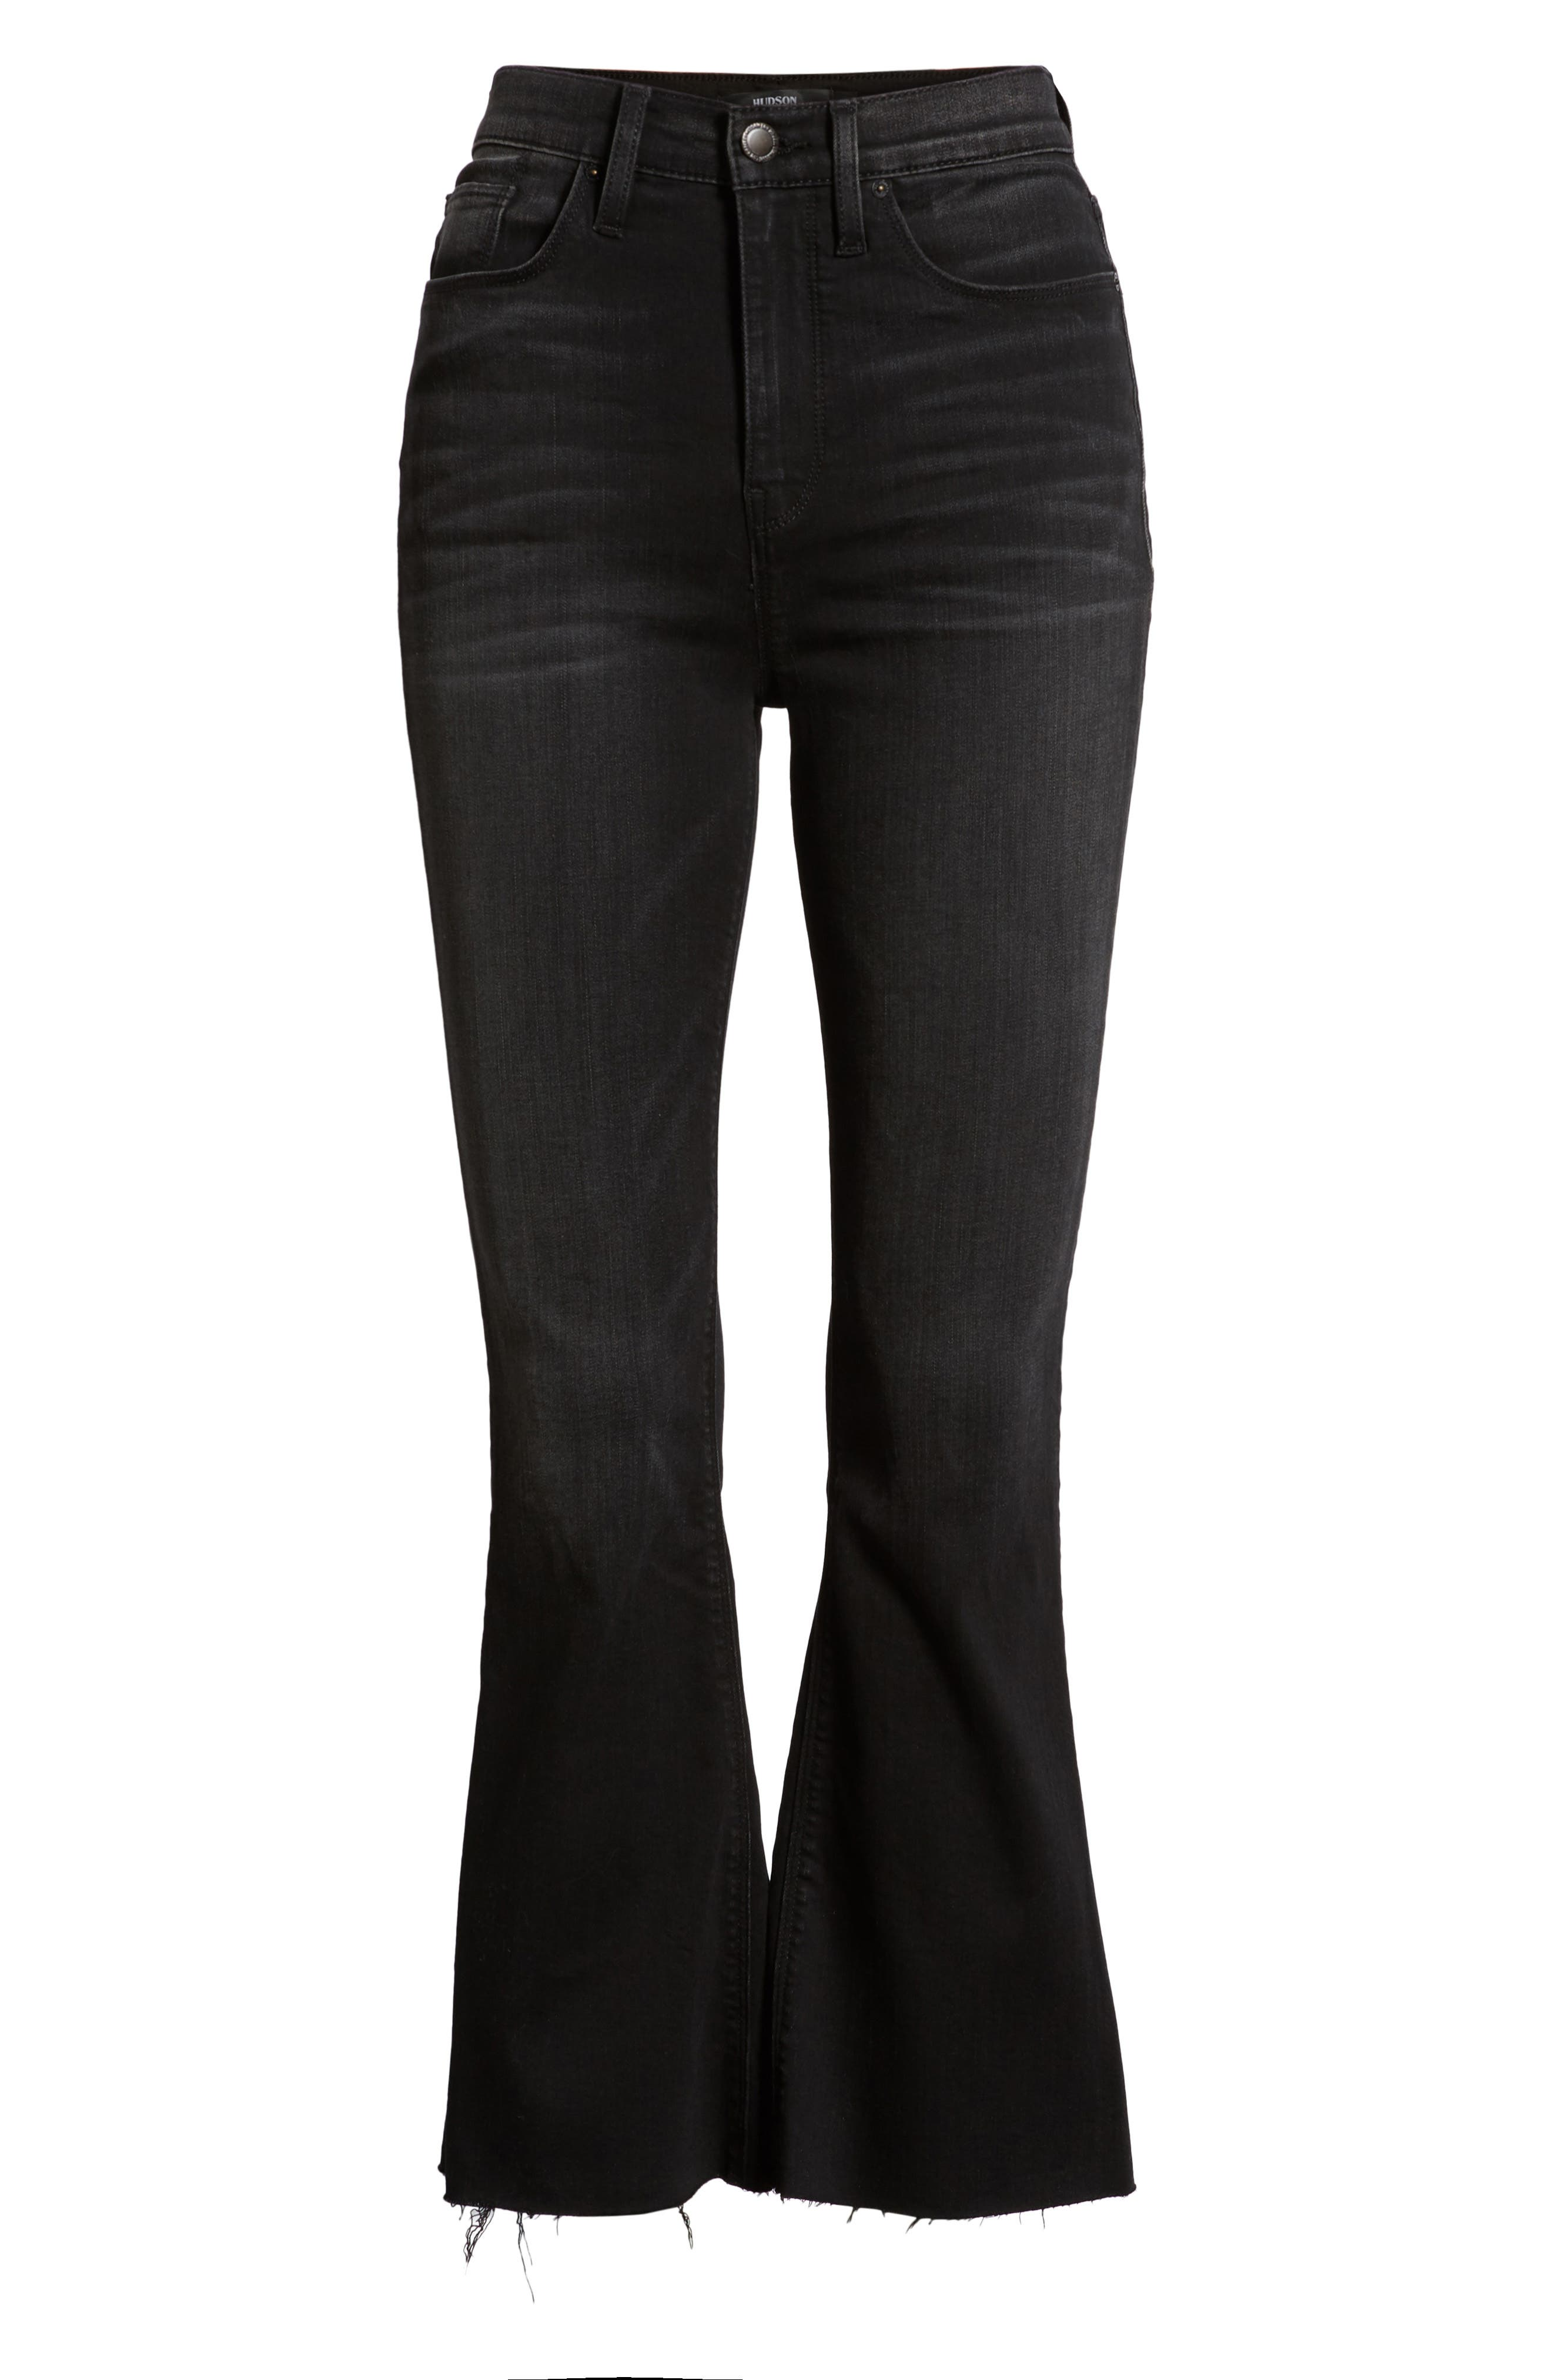 Holly High Waist Crop Flare Jeans,                             Alternate thumbnail 7, color,                             BLACK HOUND